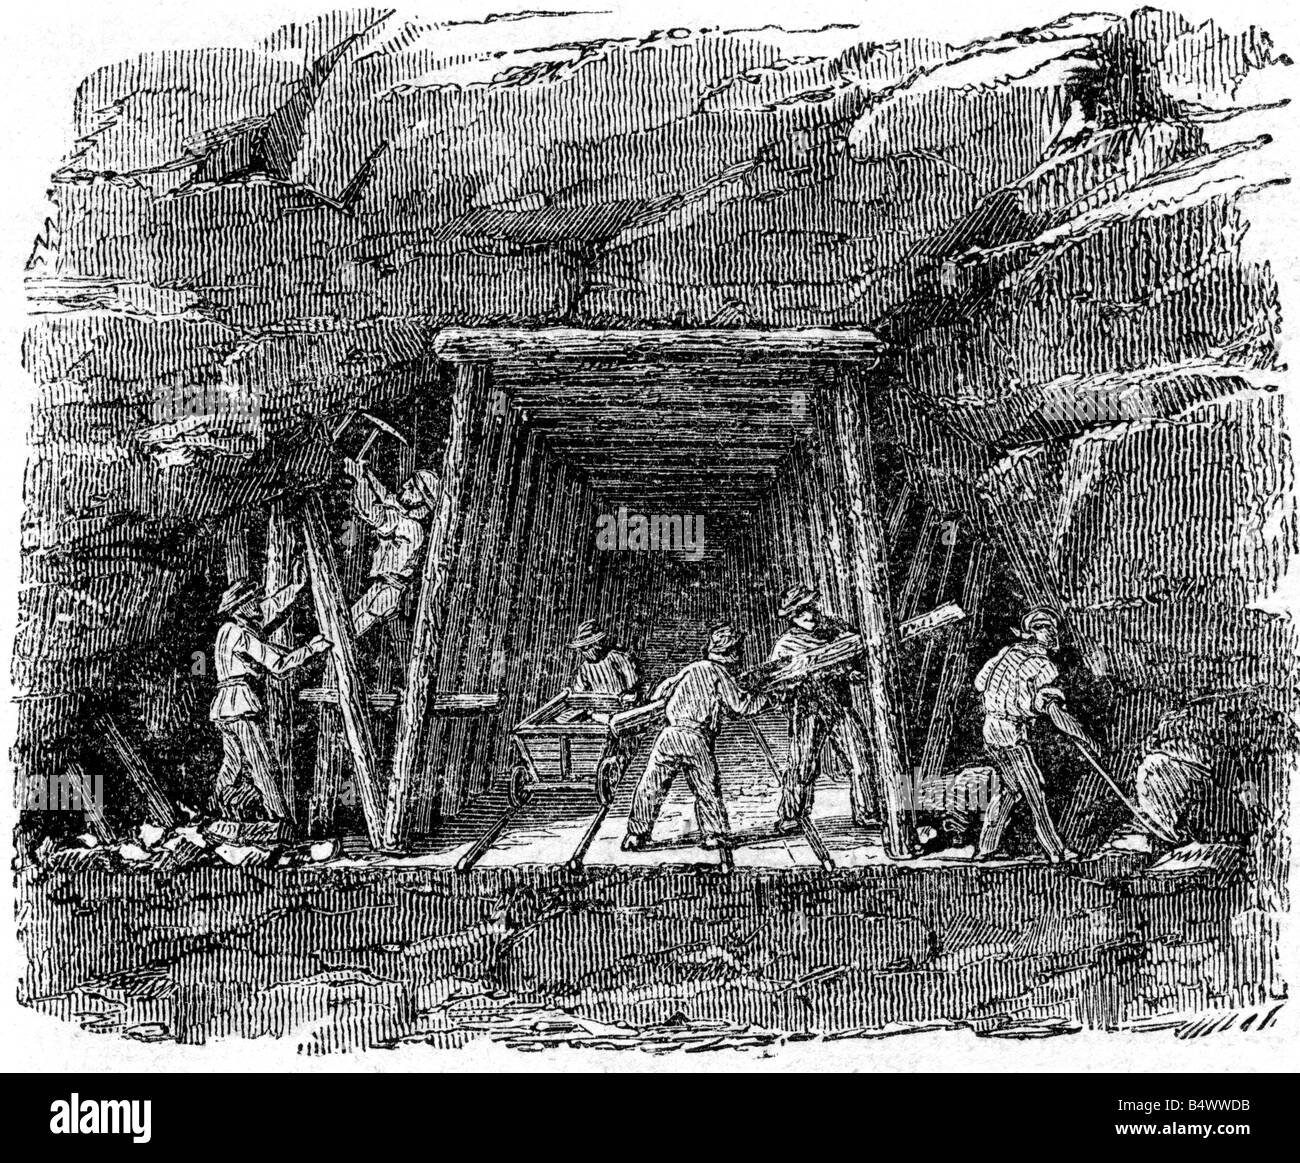 architecture, tunnels, construction of a railway tunnel, expanding the basic adit, wood engraving, Germany, 1860, - Stock Image